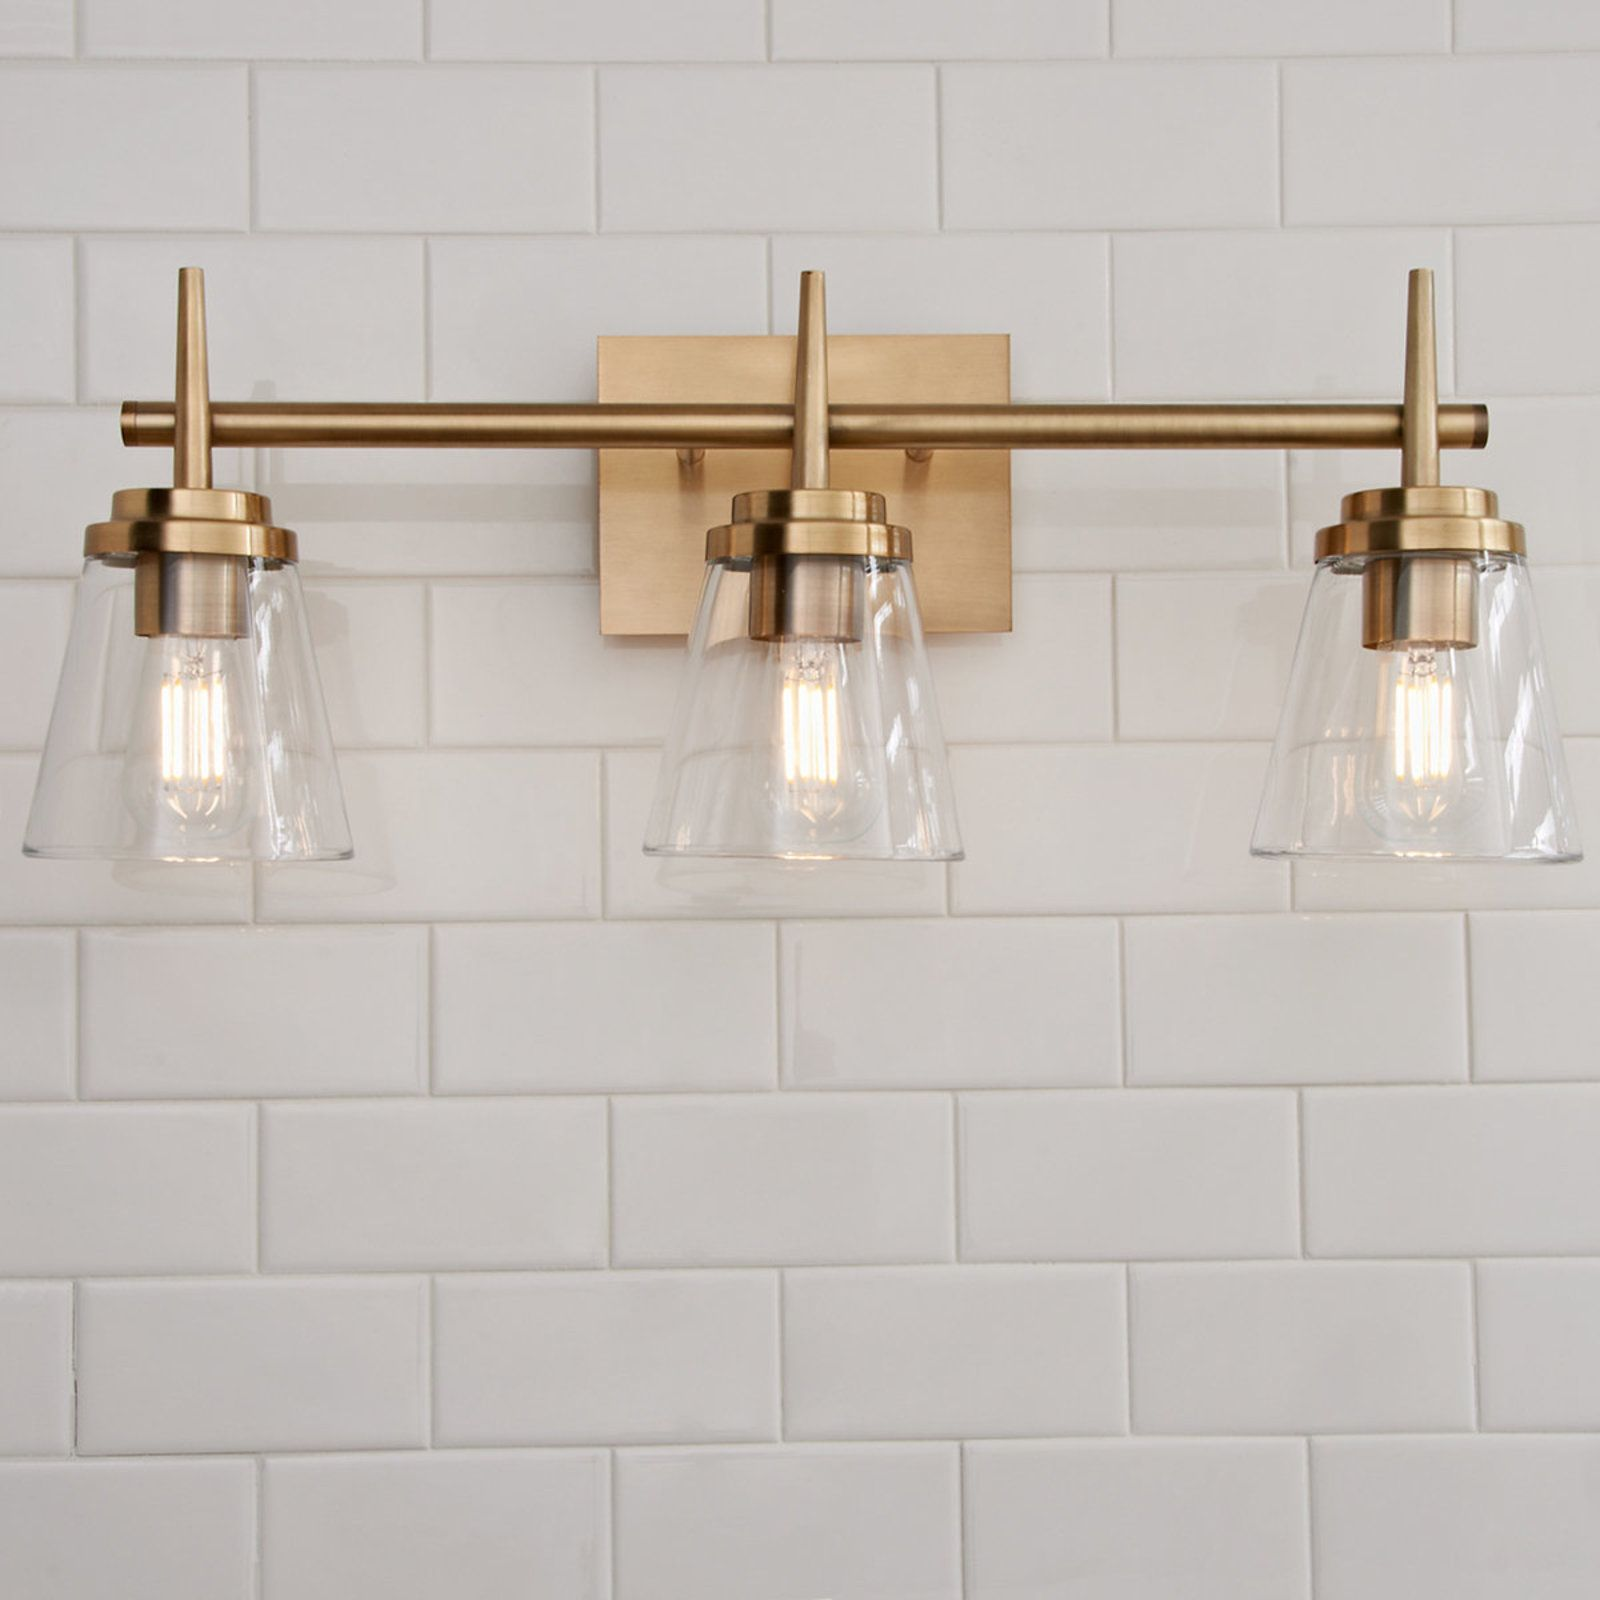 Tapered Spike Vanity Light 3 Light Bathroom Light Fixtures Bathroom Design Bathroom Styling